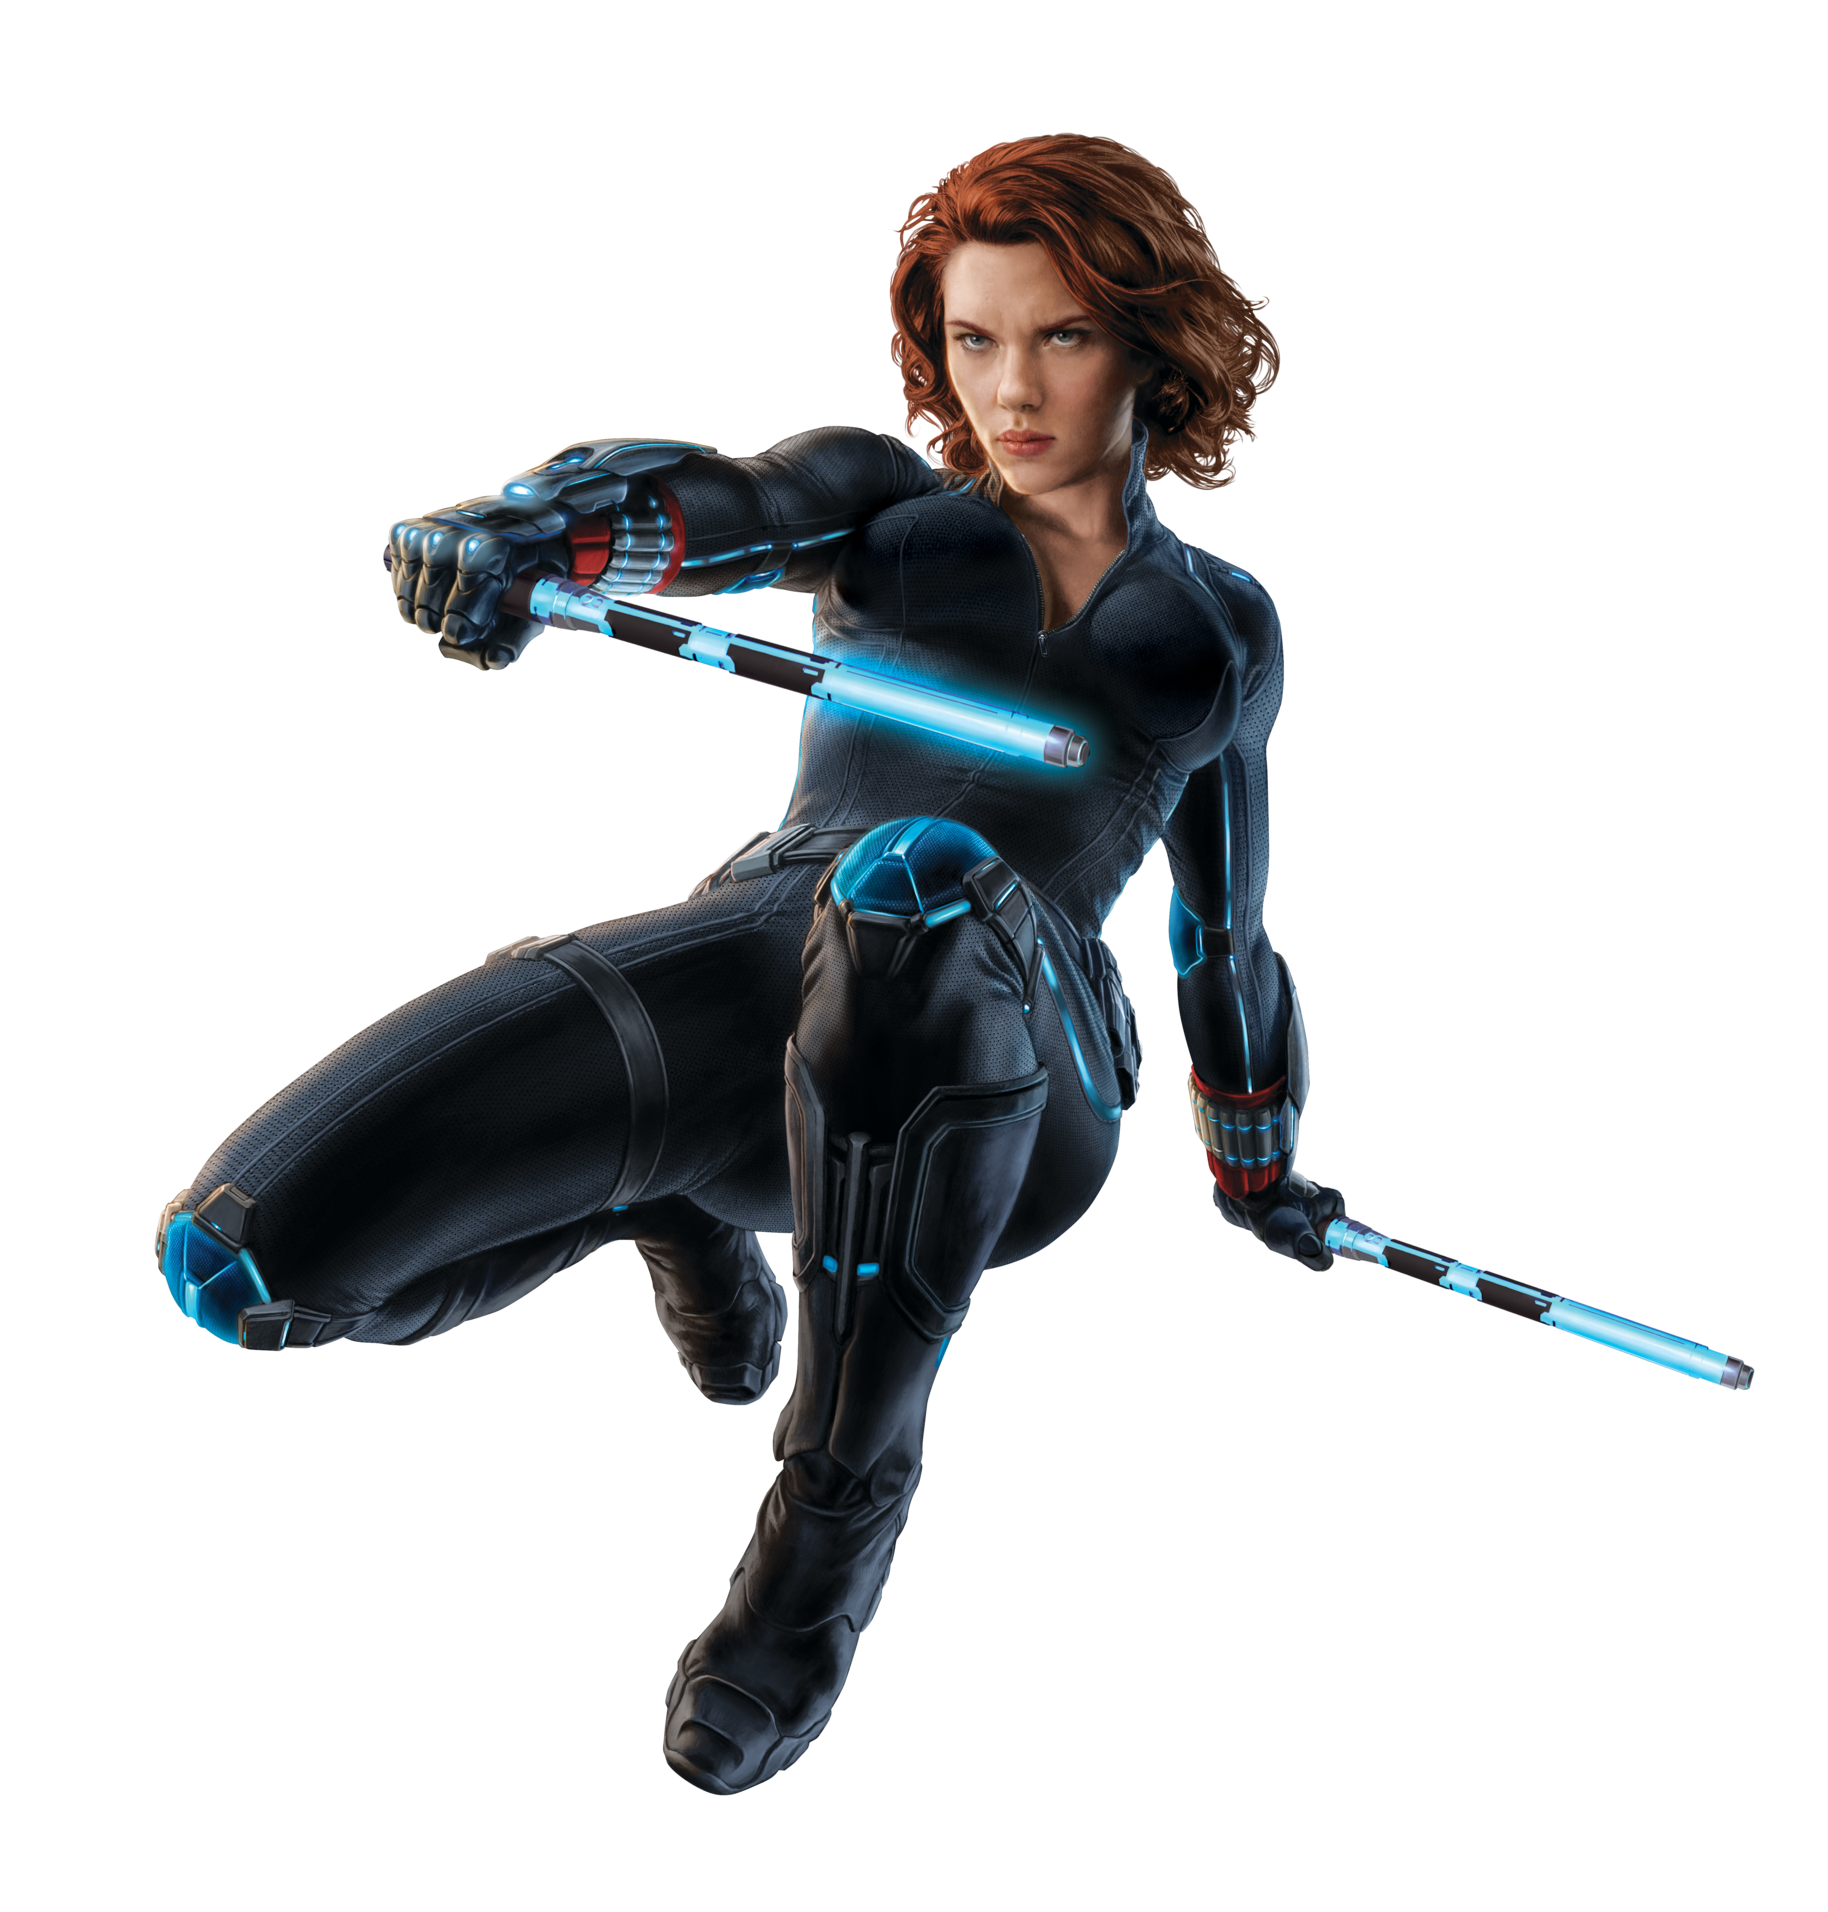 Black Widow PNG File - Black Widow PNG